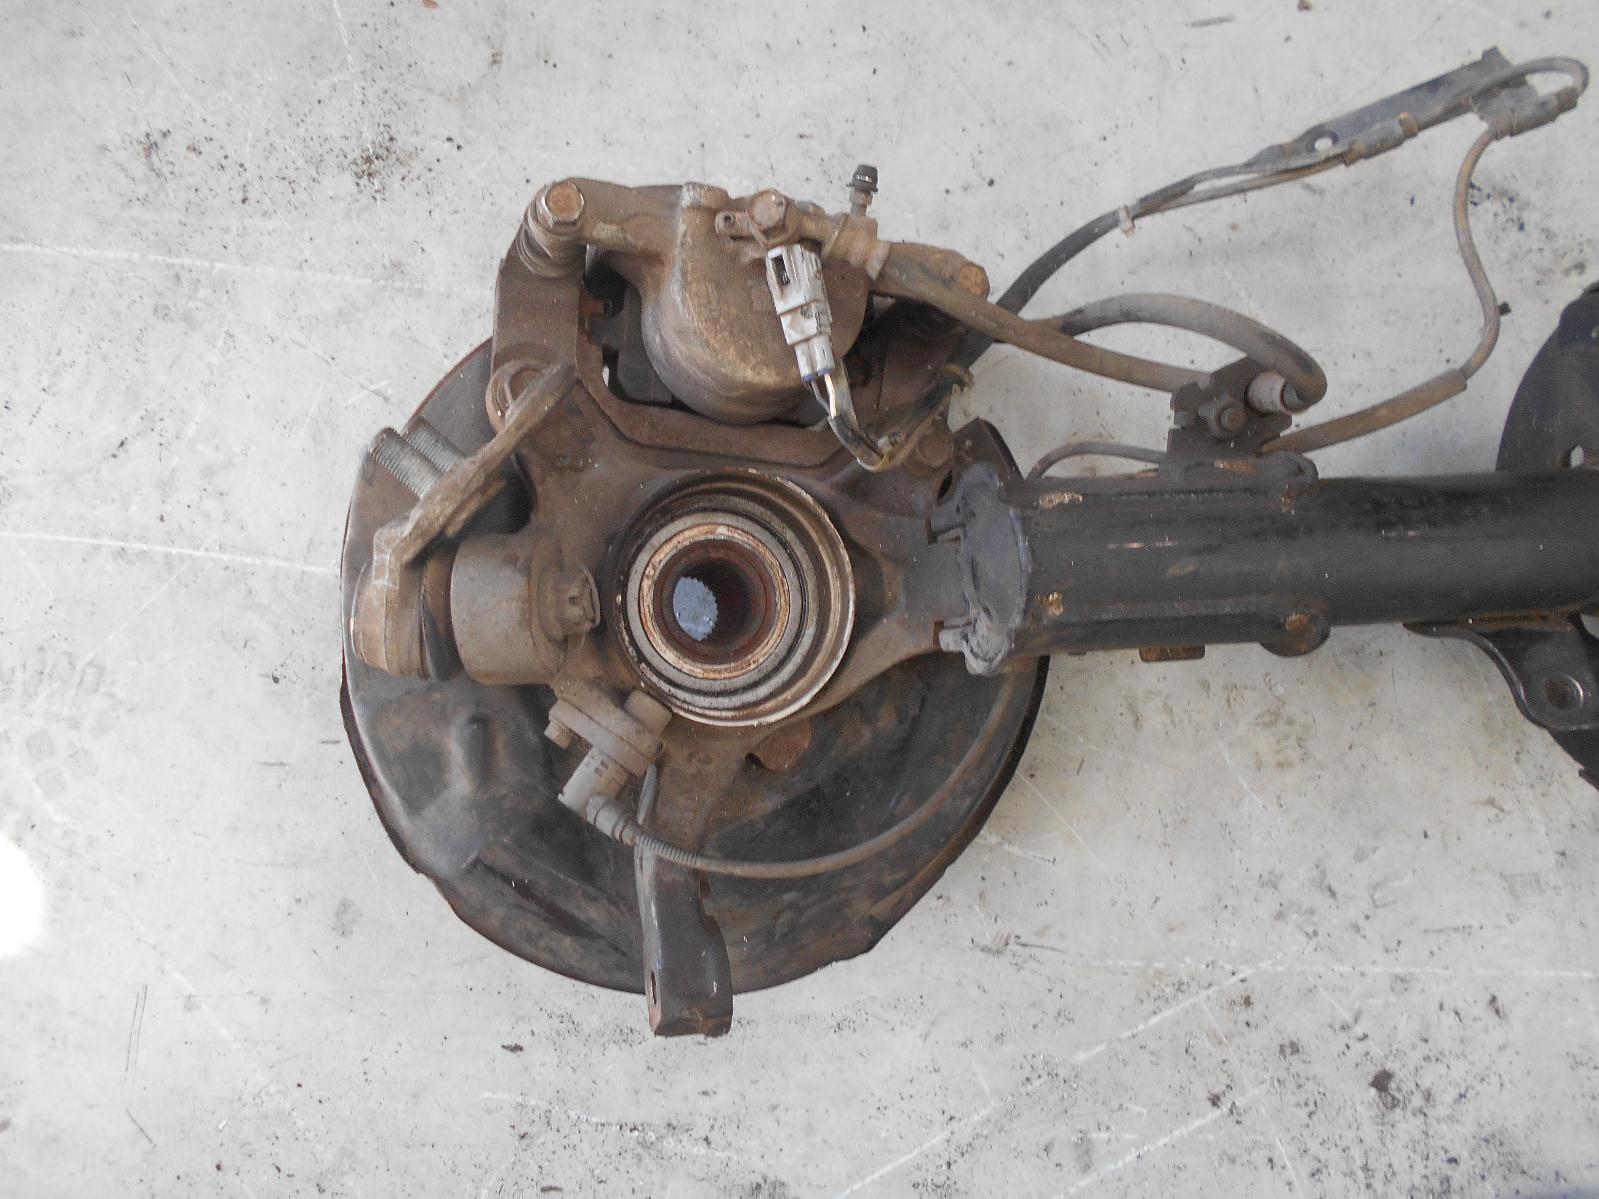 TOYOTA CAMRY, Right Front Hub Assembly, SK20, 2.2, 5S, ABS TYPE, 08/97-08/02